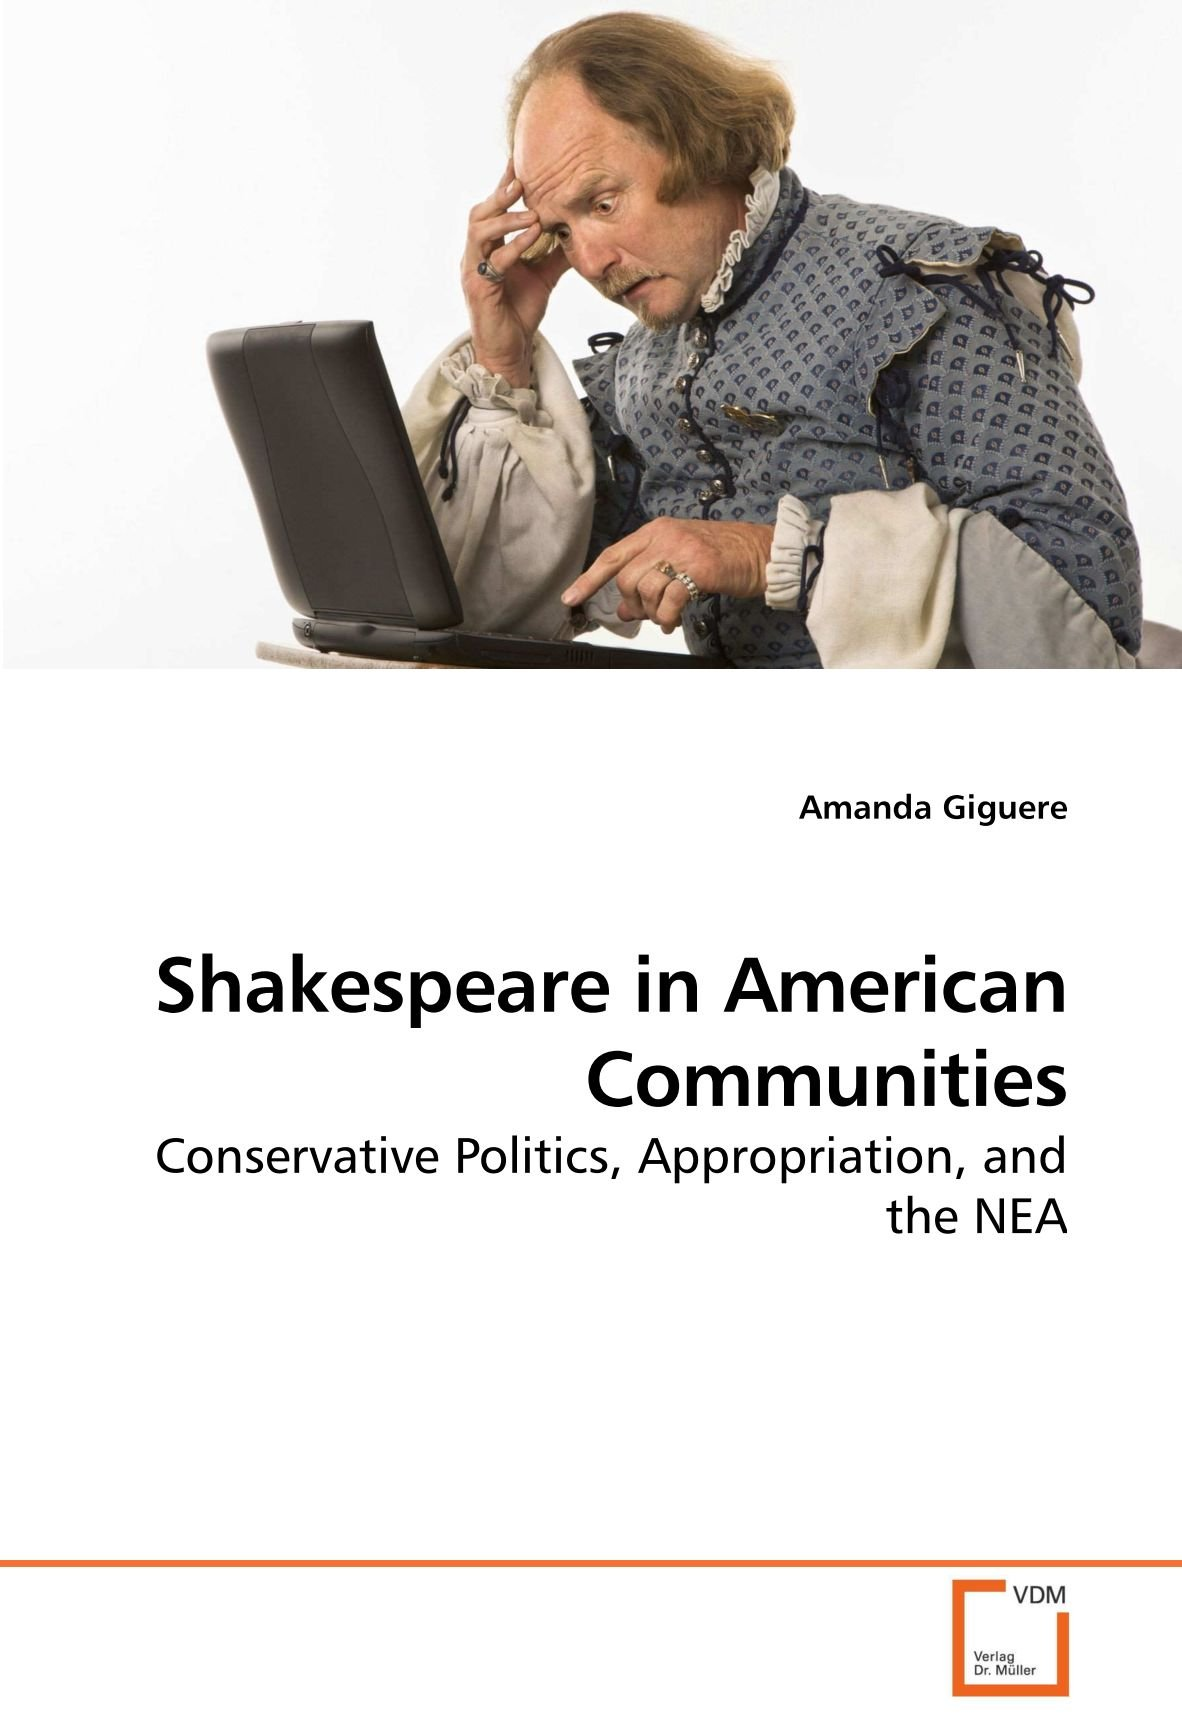 Download Shakespeare in American Communities: Conservative Politics, Appropriation, and the NEA ebook